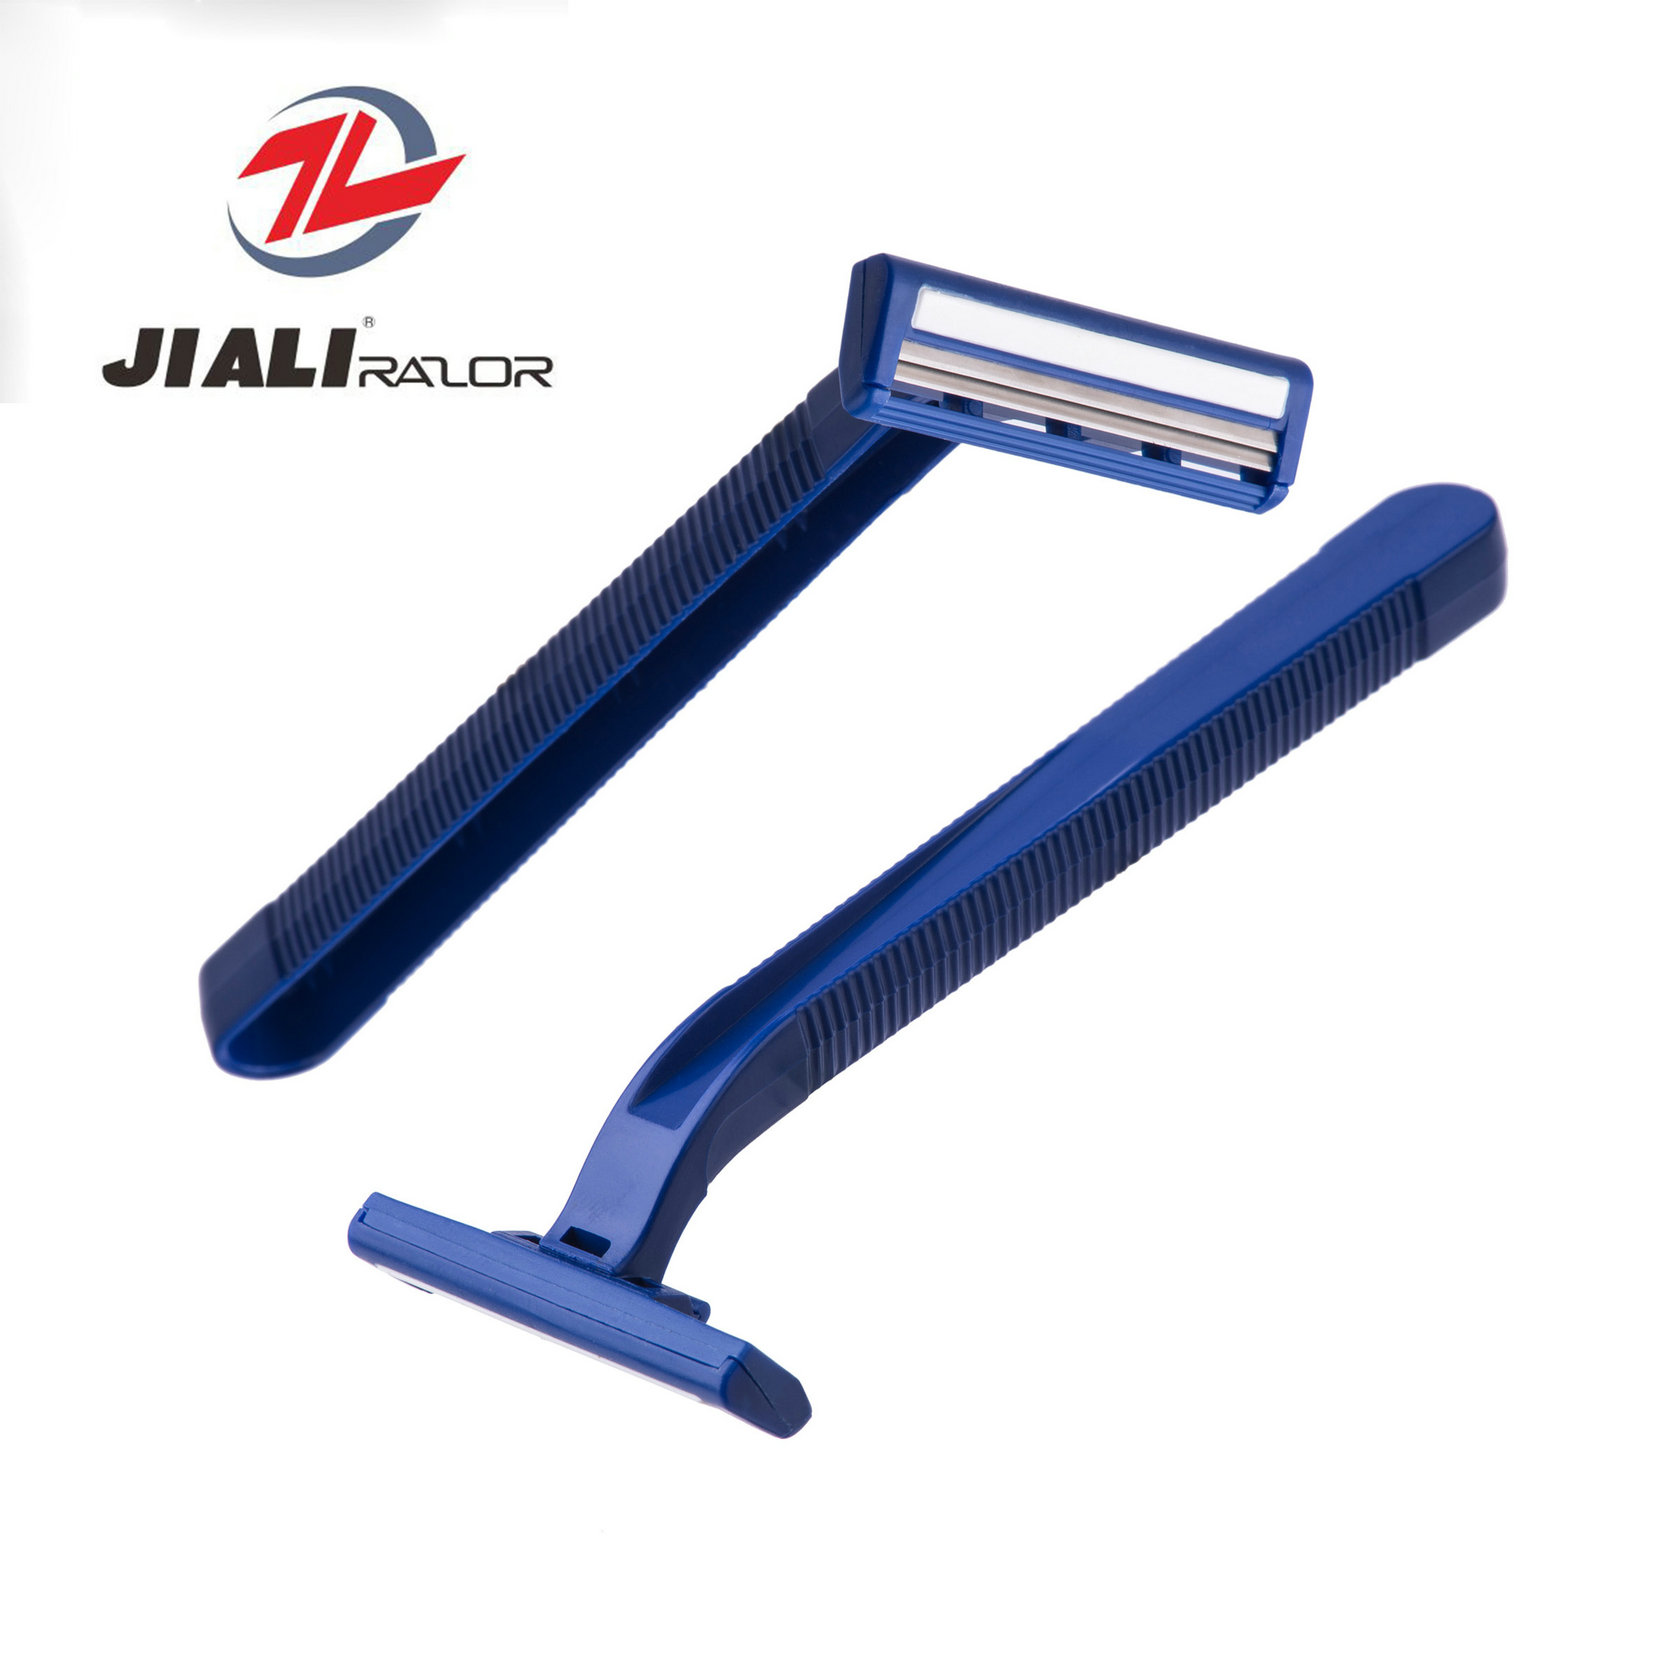 Hot Sale Disposable Shaving Razor, Plastic Shaving Razor